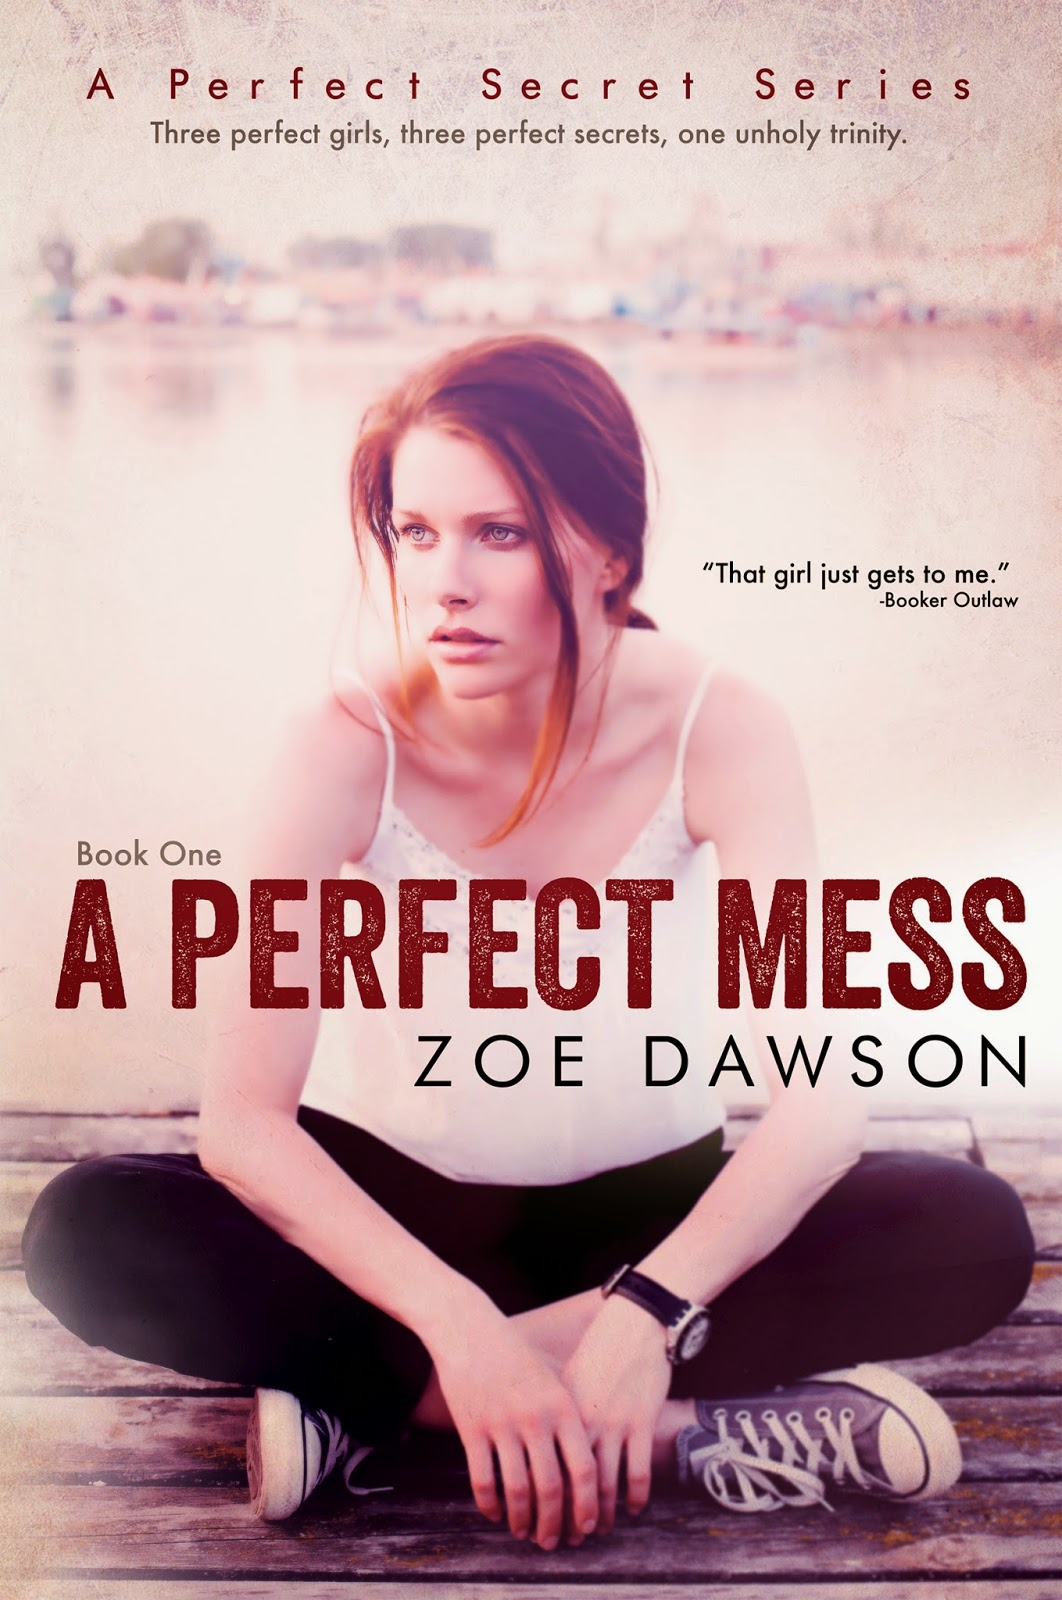 http://zoedawson.com/books/a-perfect-mess/